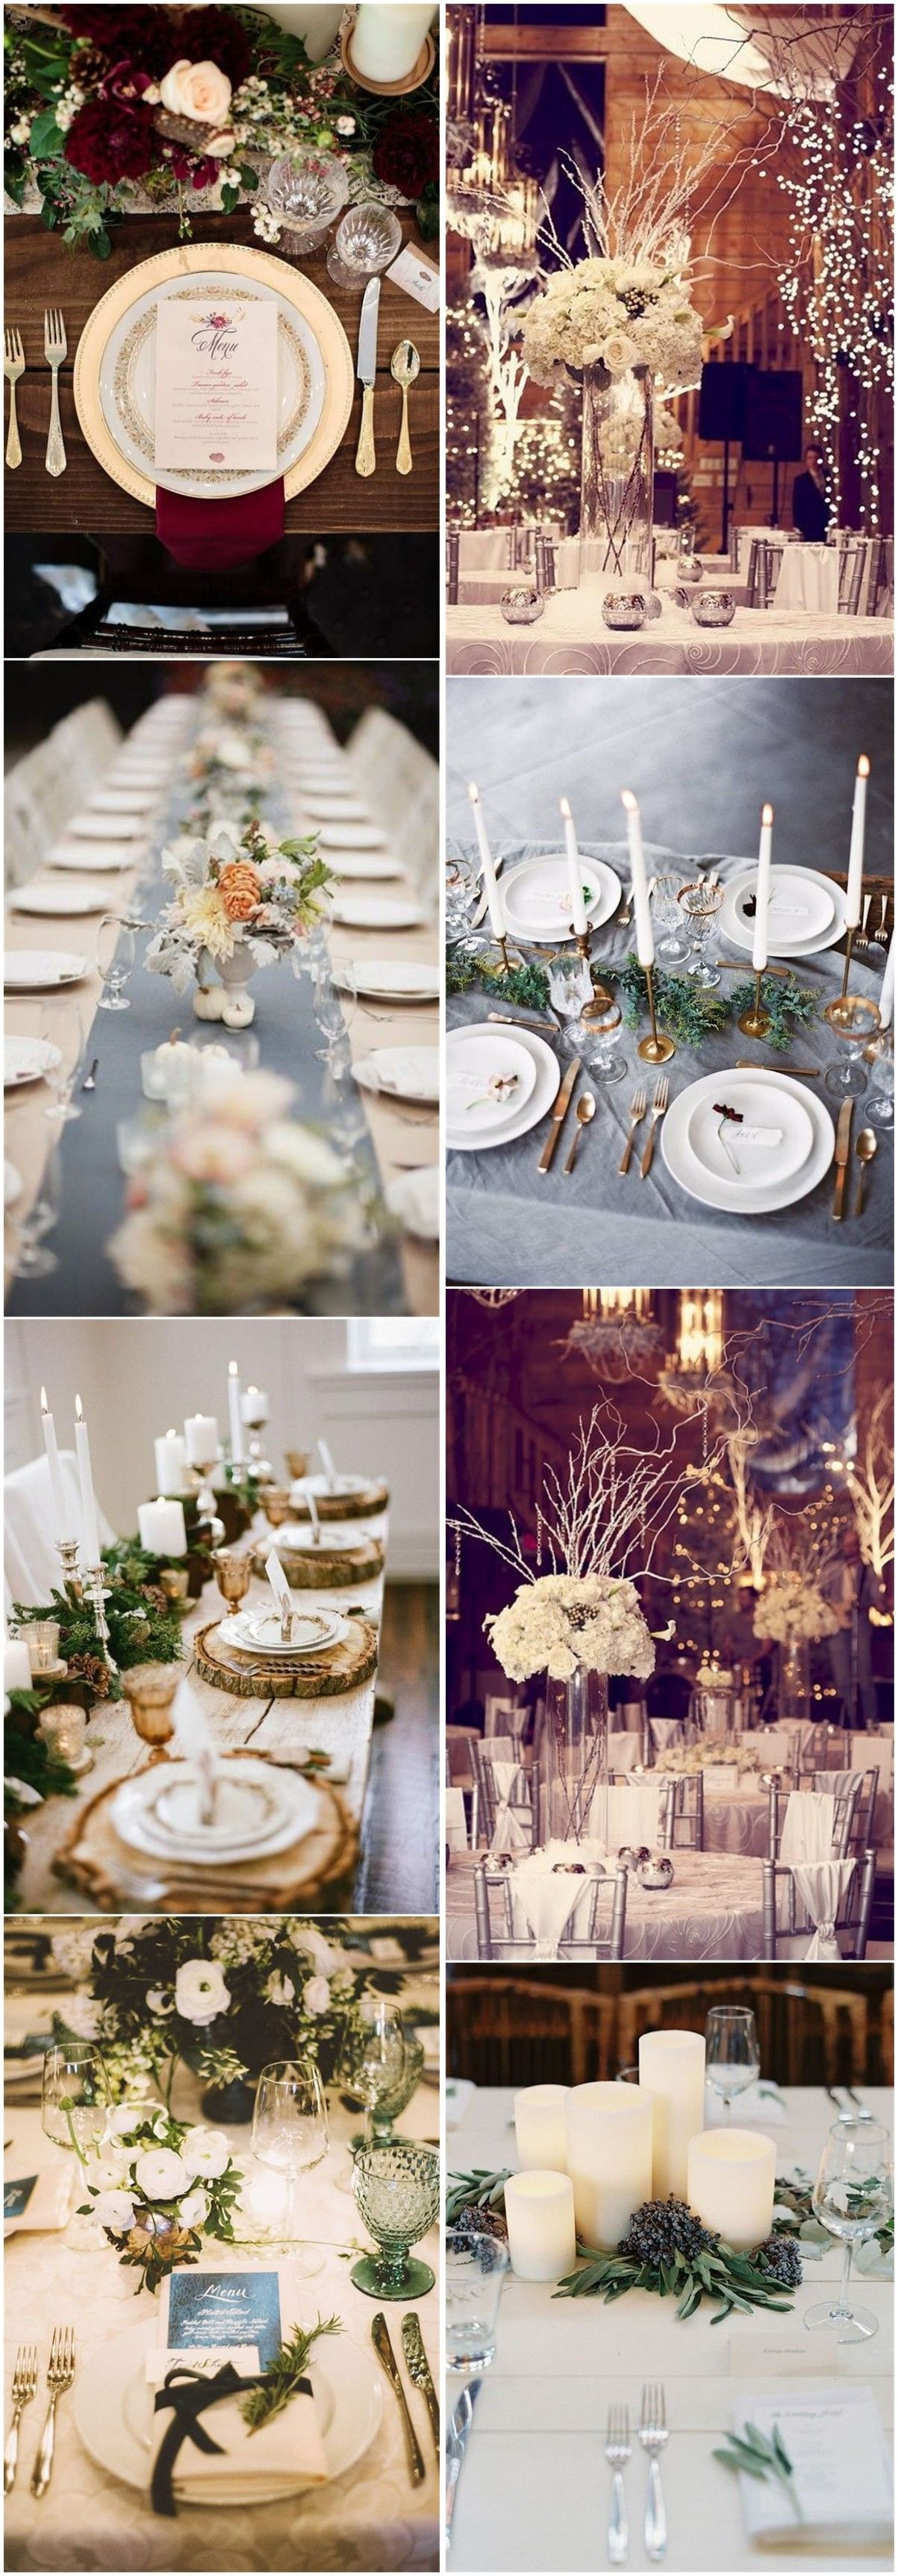 Wedding Decorations Romance And Warmth 29 Genius Winter Wedding Table